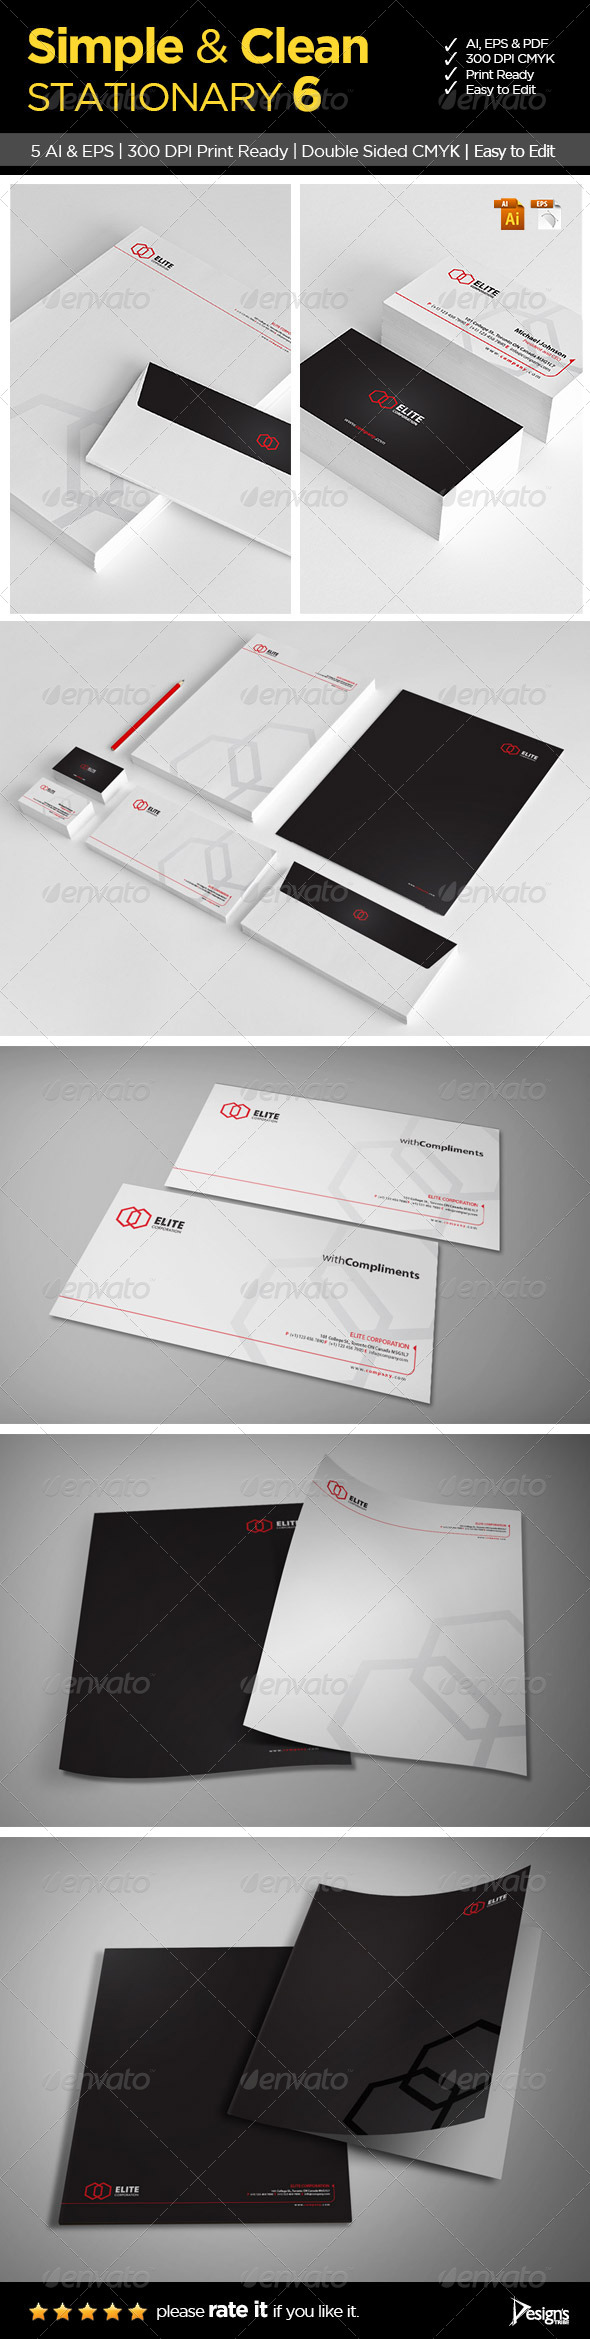 Simple and Clean Stationary 6 - Stationery Print Templates